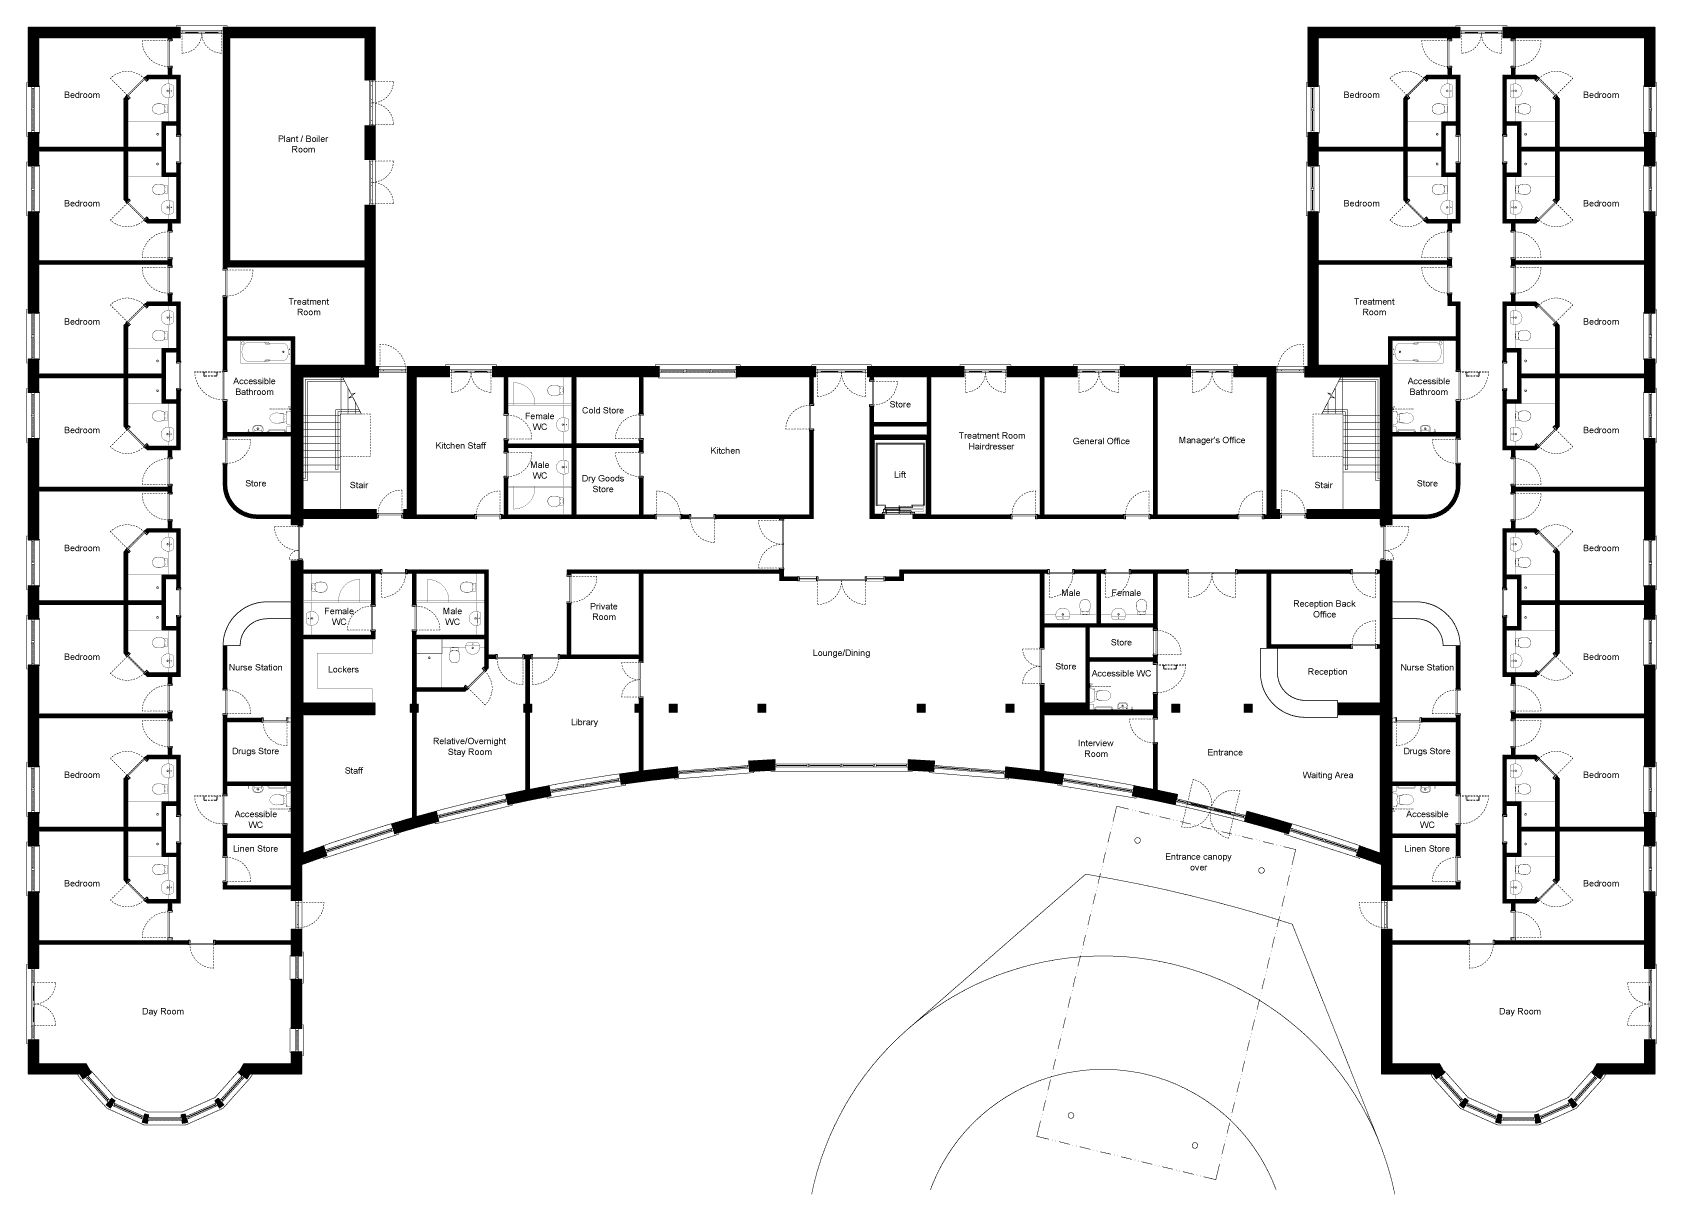 Image From Http Butehomes Com Images Ascog Plan Ground Floor Big